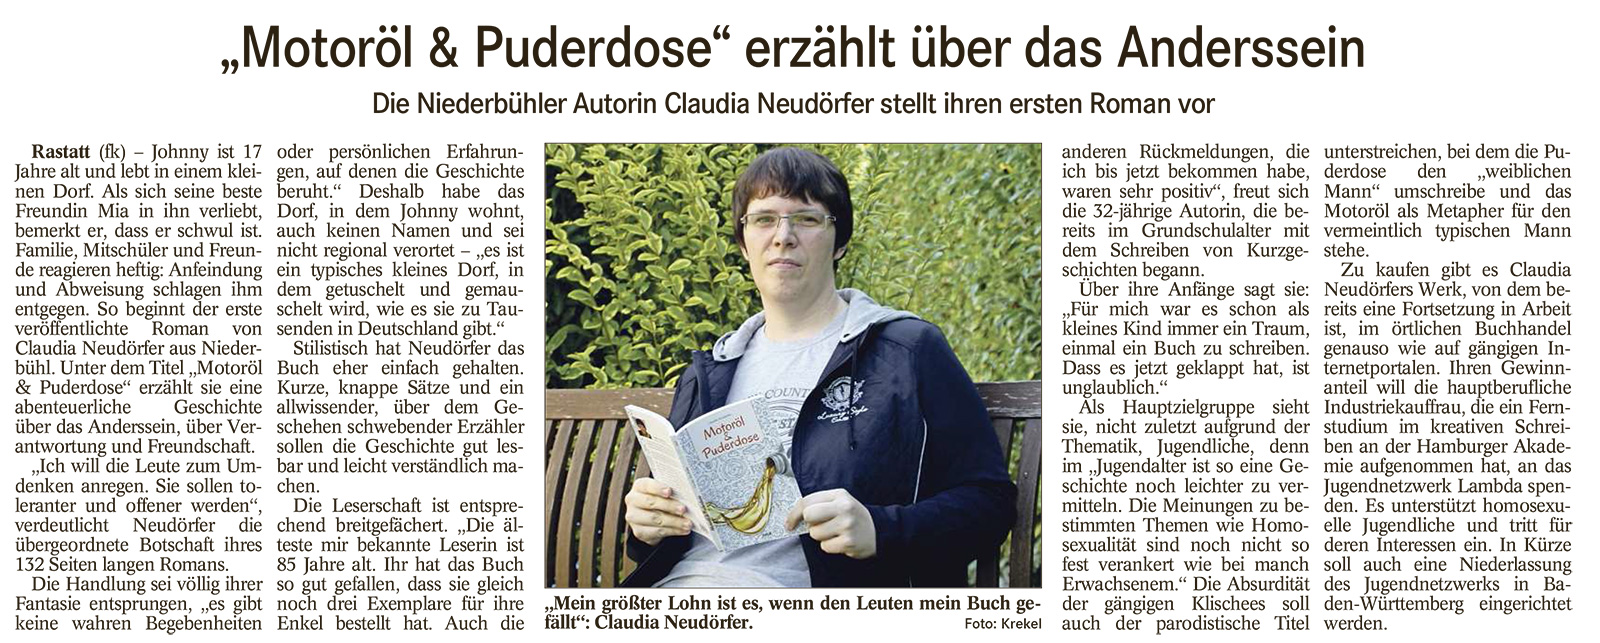 Badisches Tagblatt, 7. April 2015